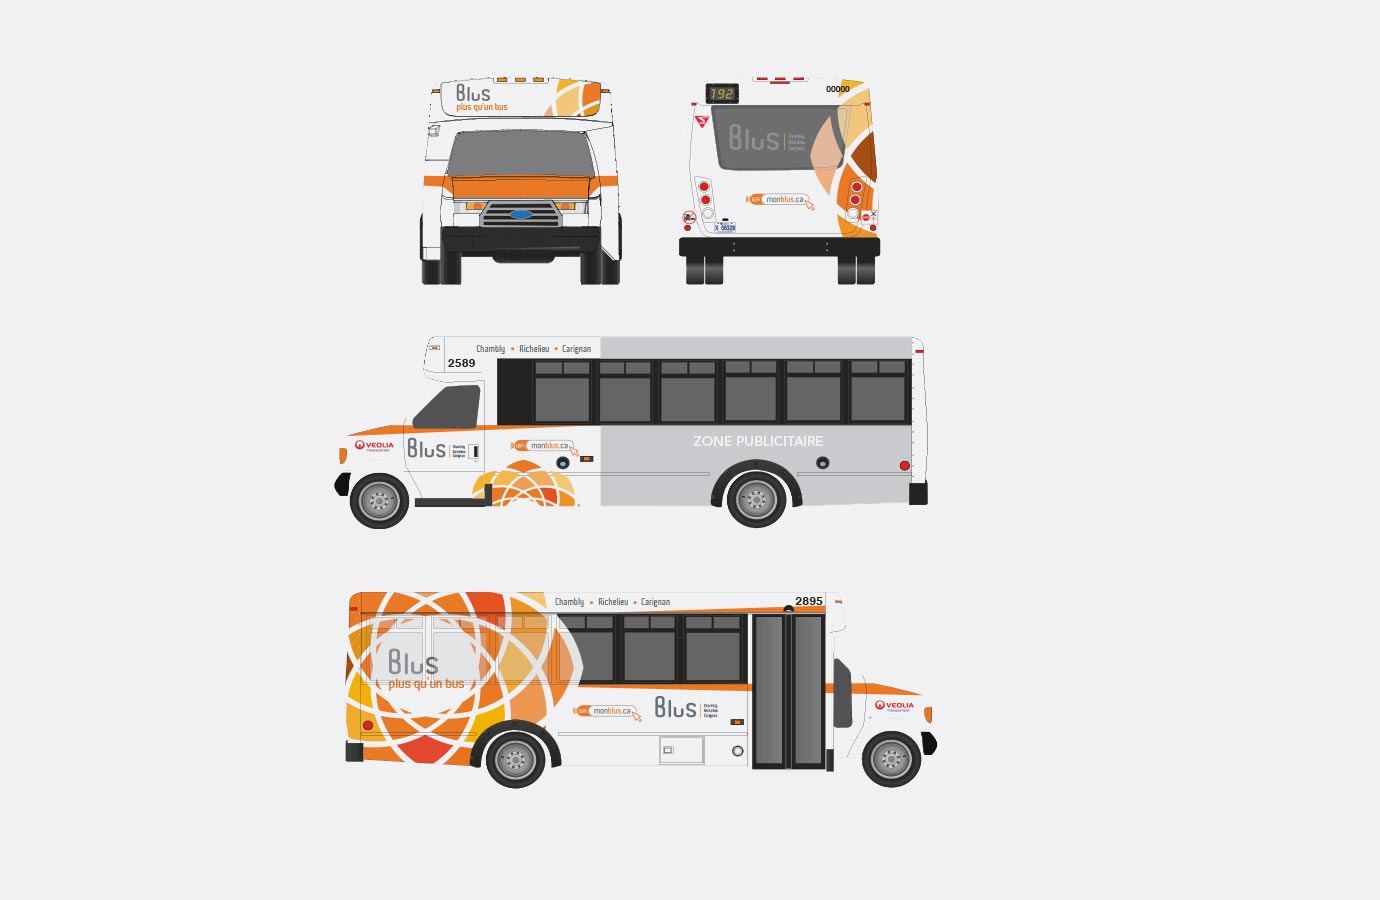 Lettrage des mini-autobus Blus, version orange